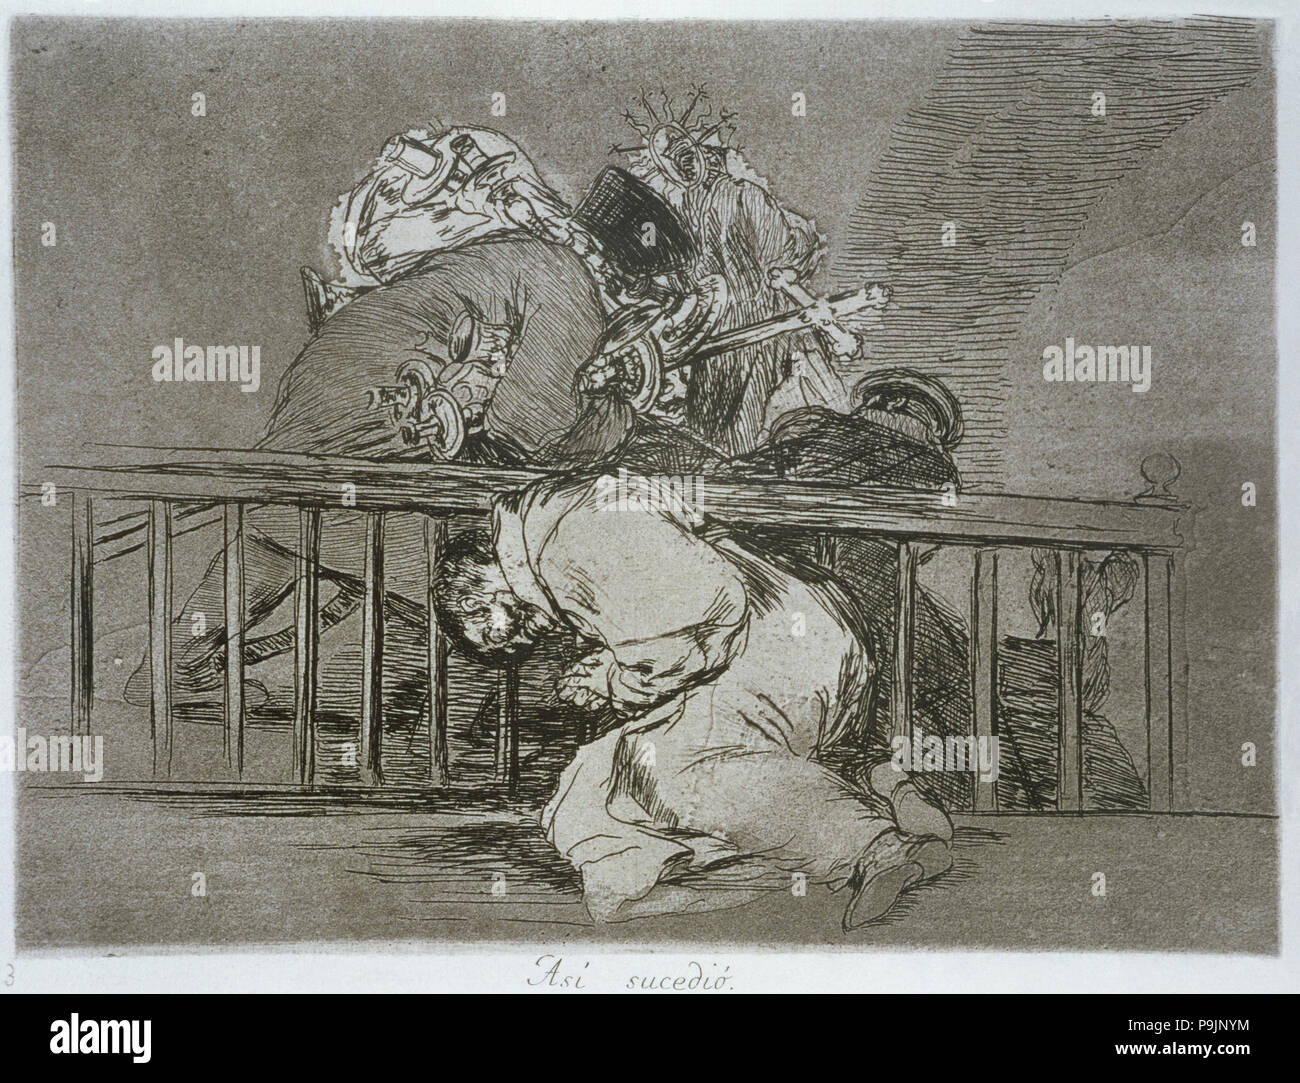 The Disasters of War, a series of etchings by Francisco de Goya (1746-1828),  plate 47: 'Así sucedió' (This is how it happened), first editio